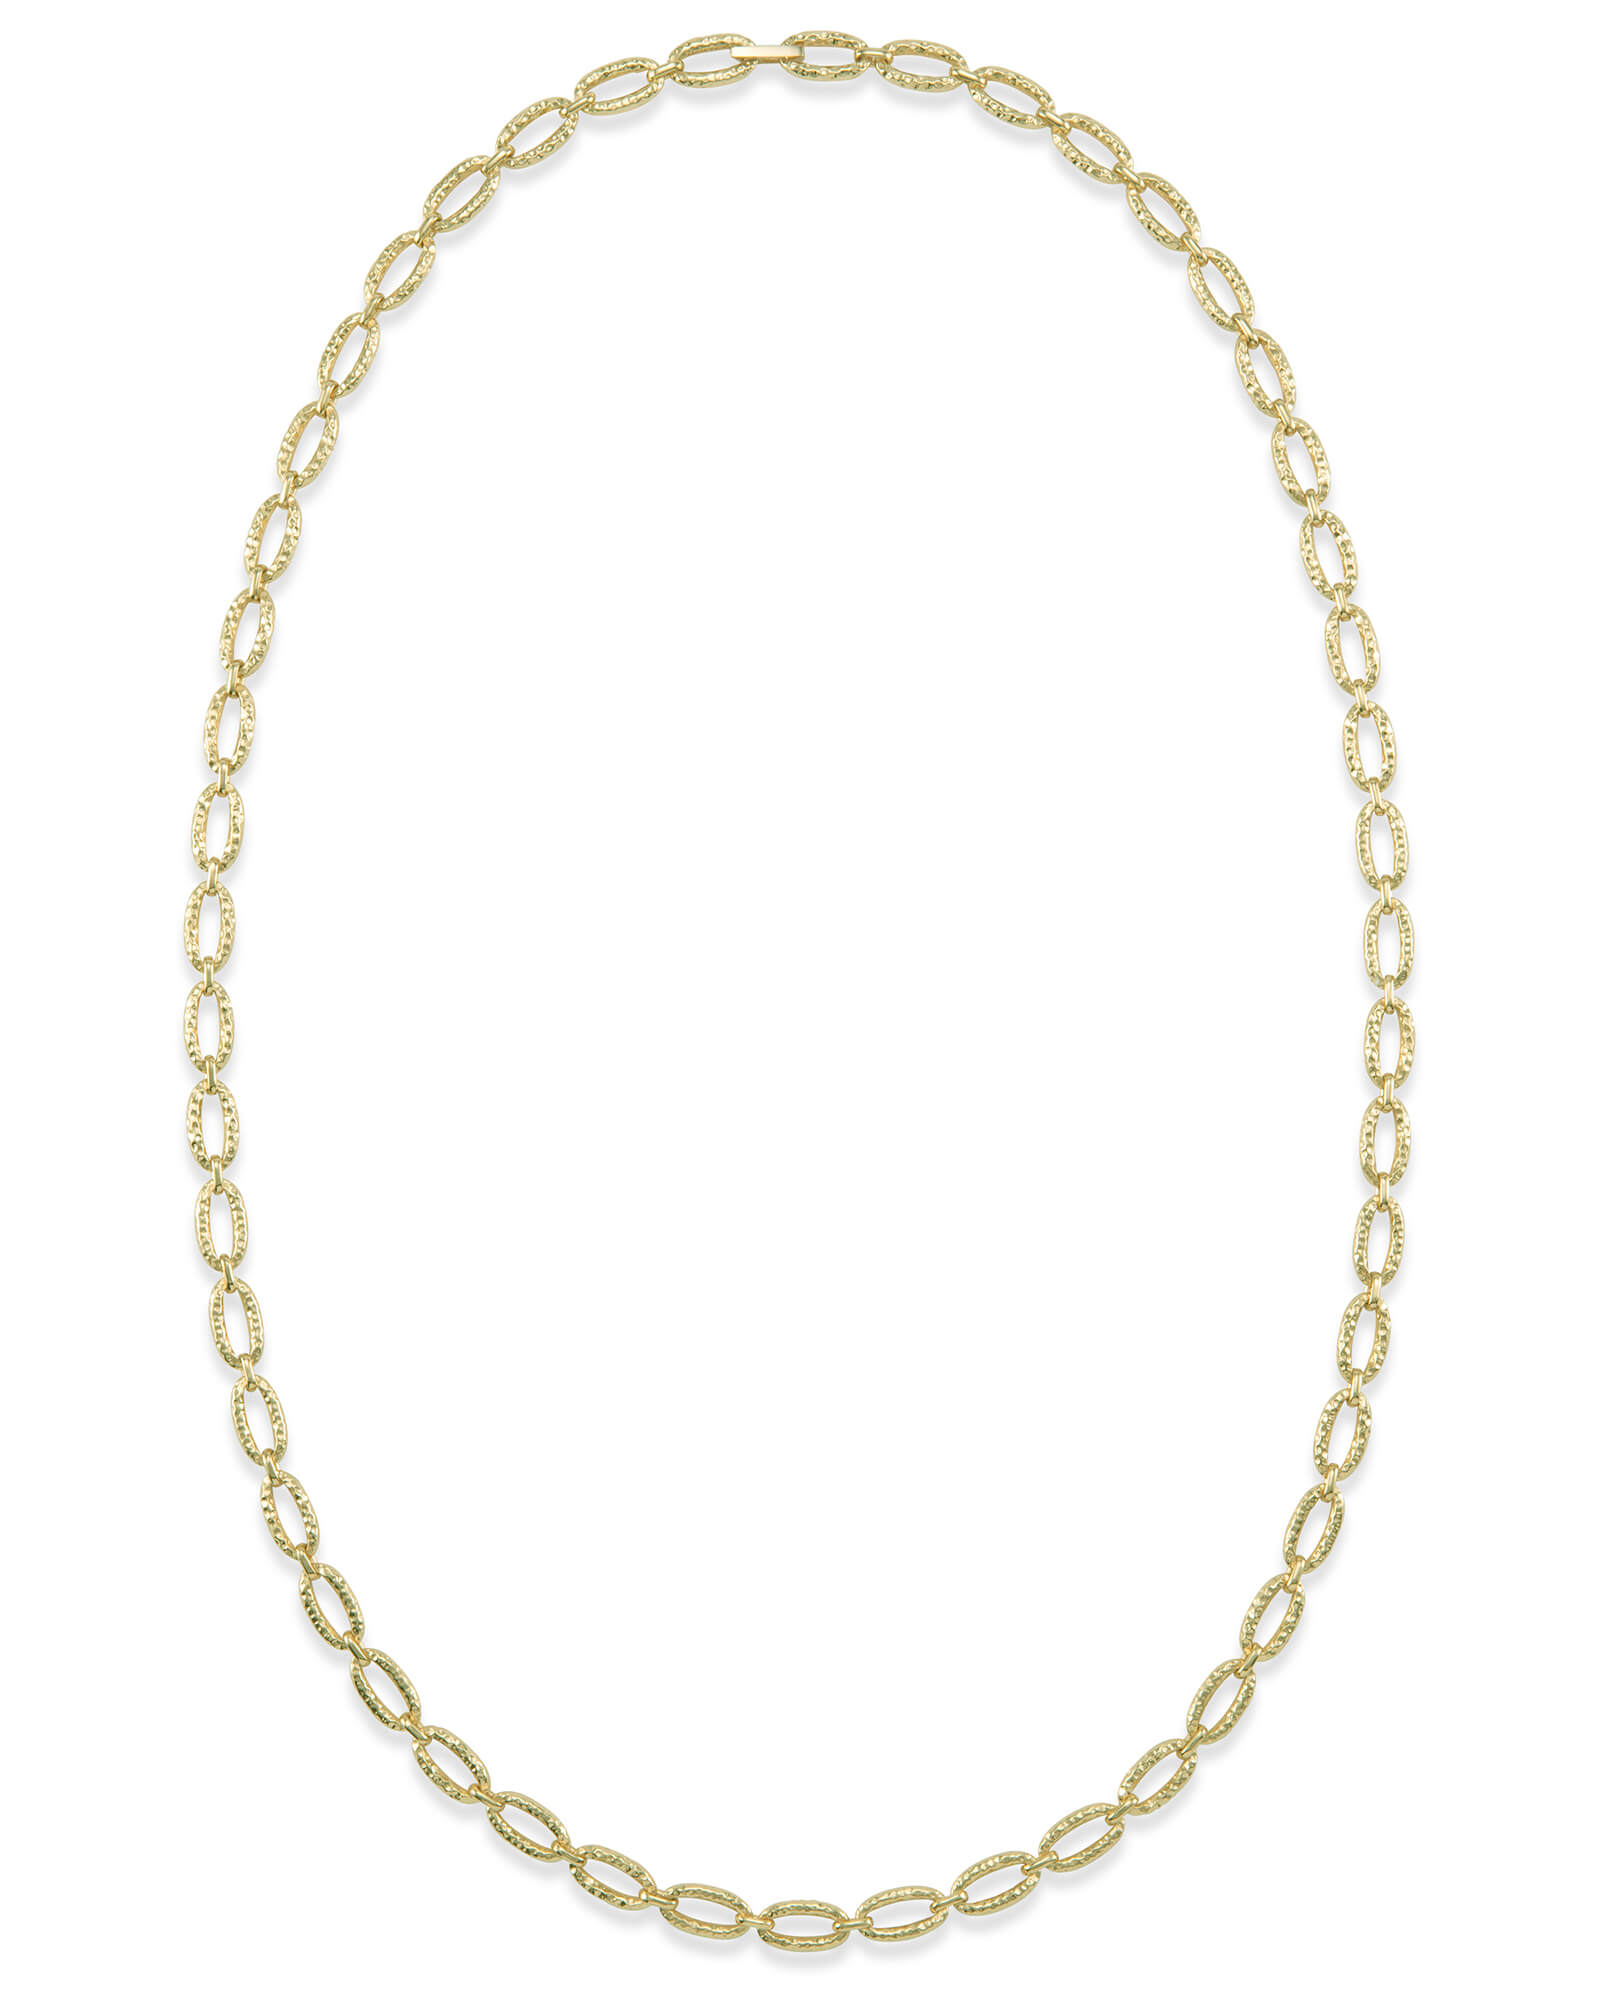 32 Inch Chain Link Necklace in Gold